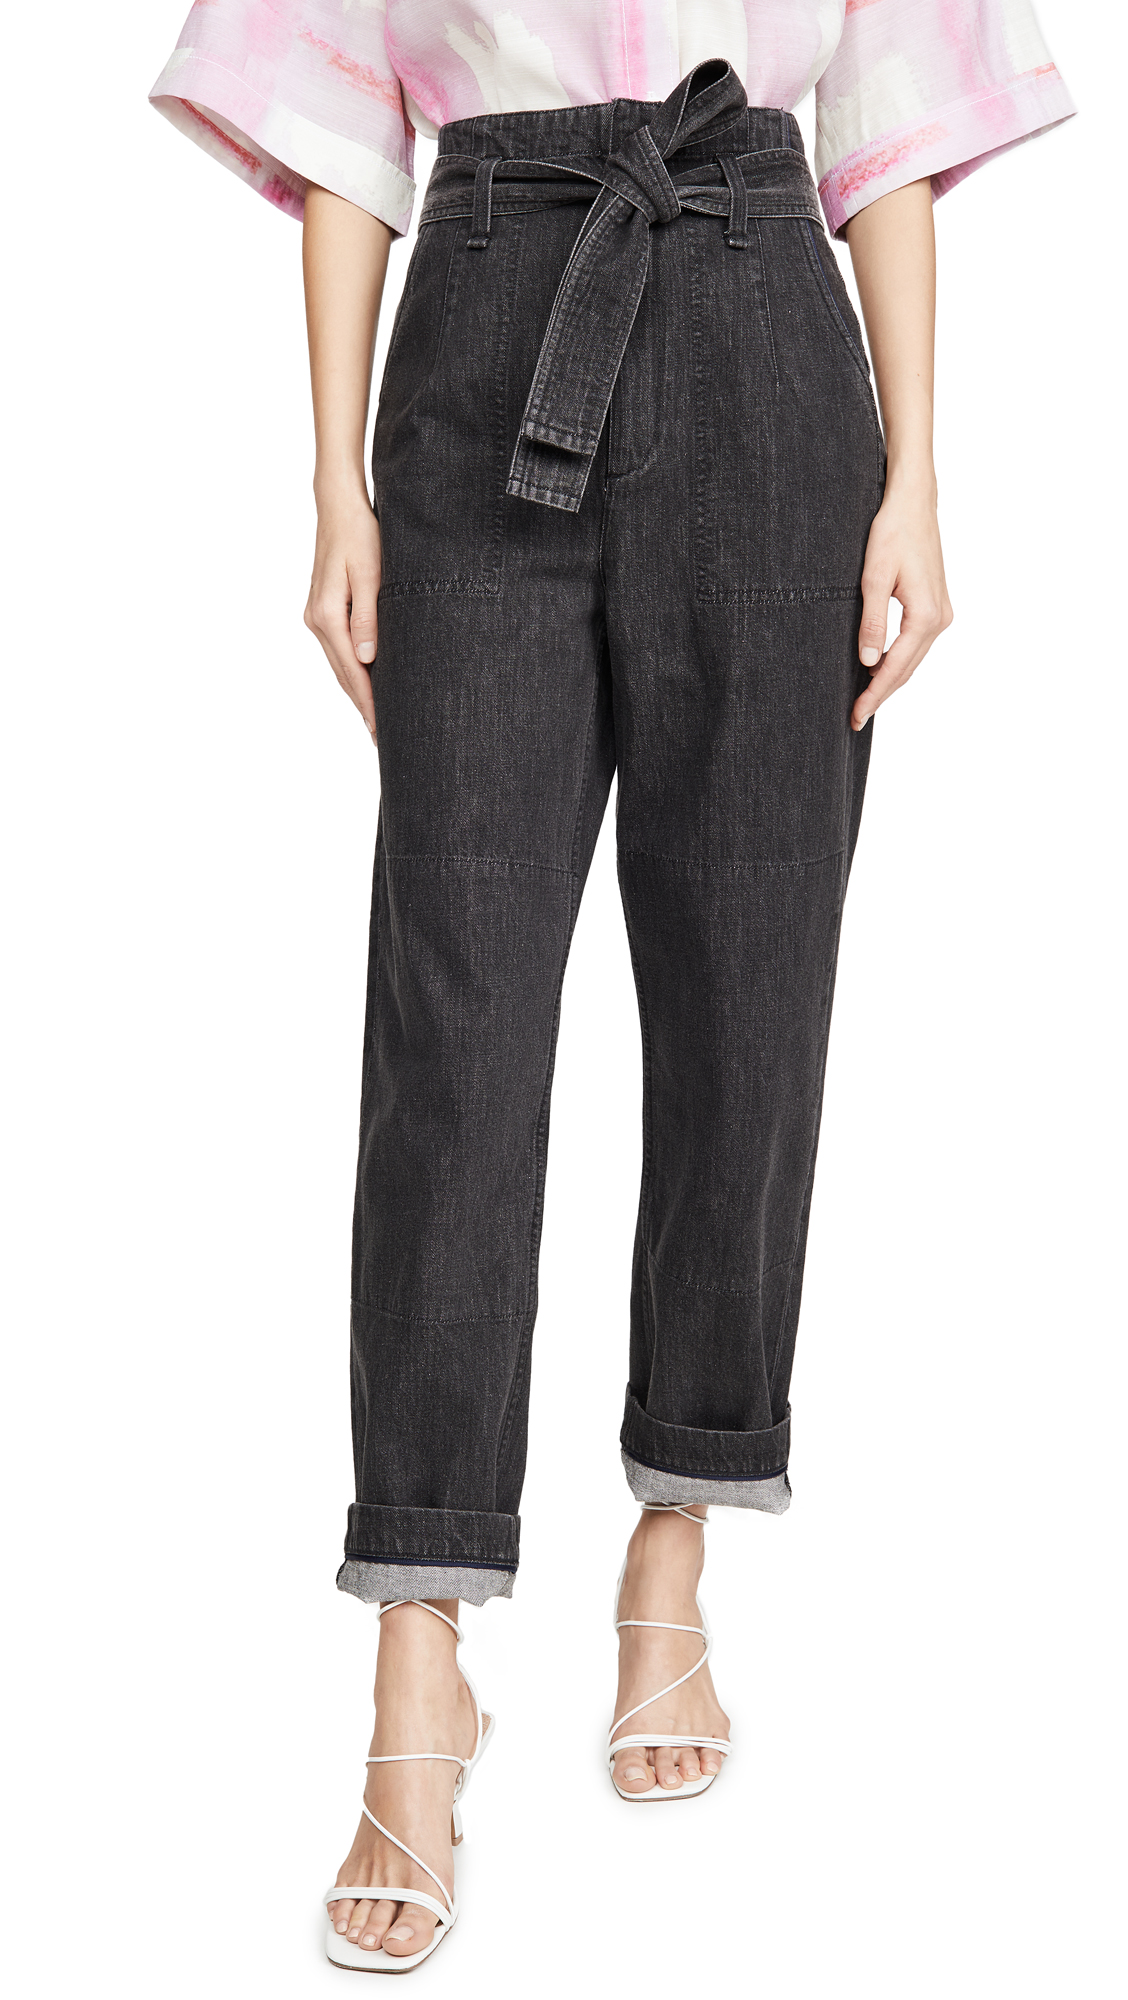 Buy Rag & Bone/JEAN online - photo of Rag & Bone/JEAN Super High Rise Darted Jeans